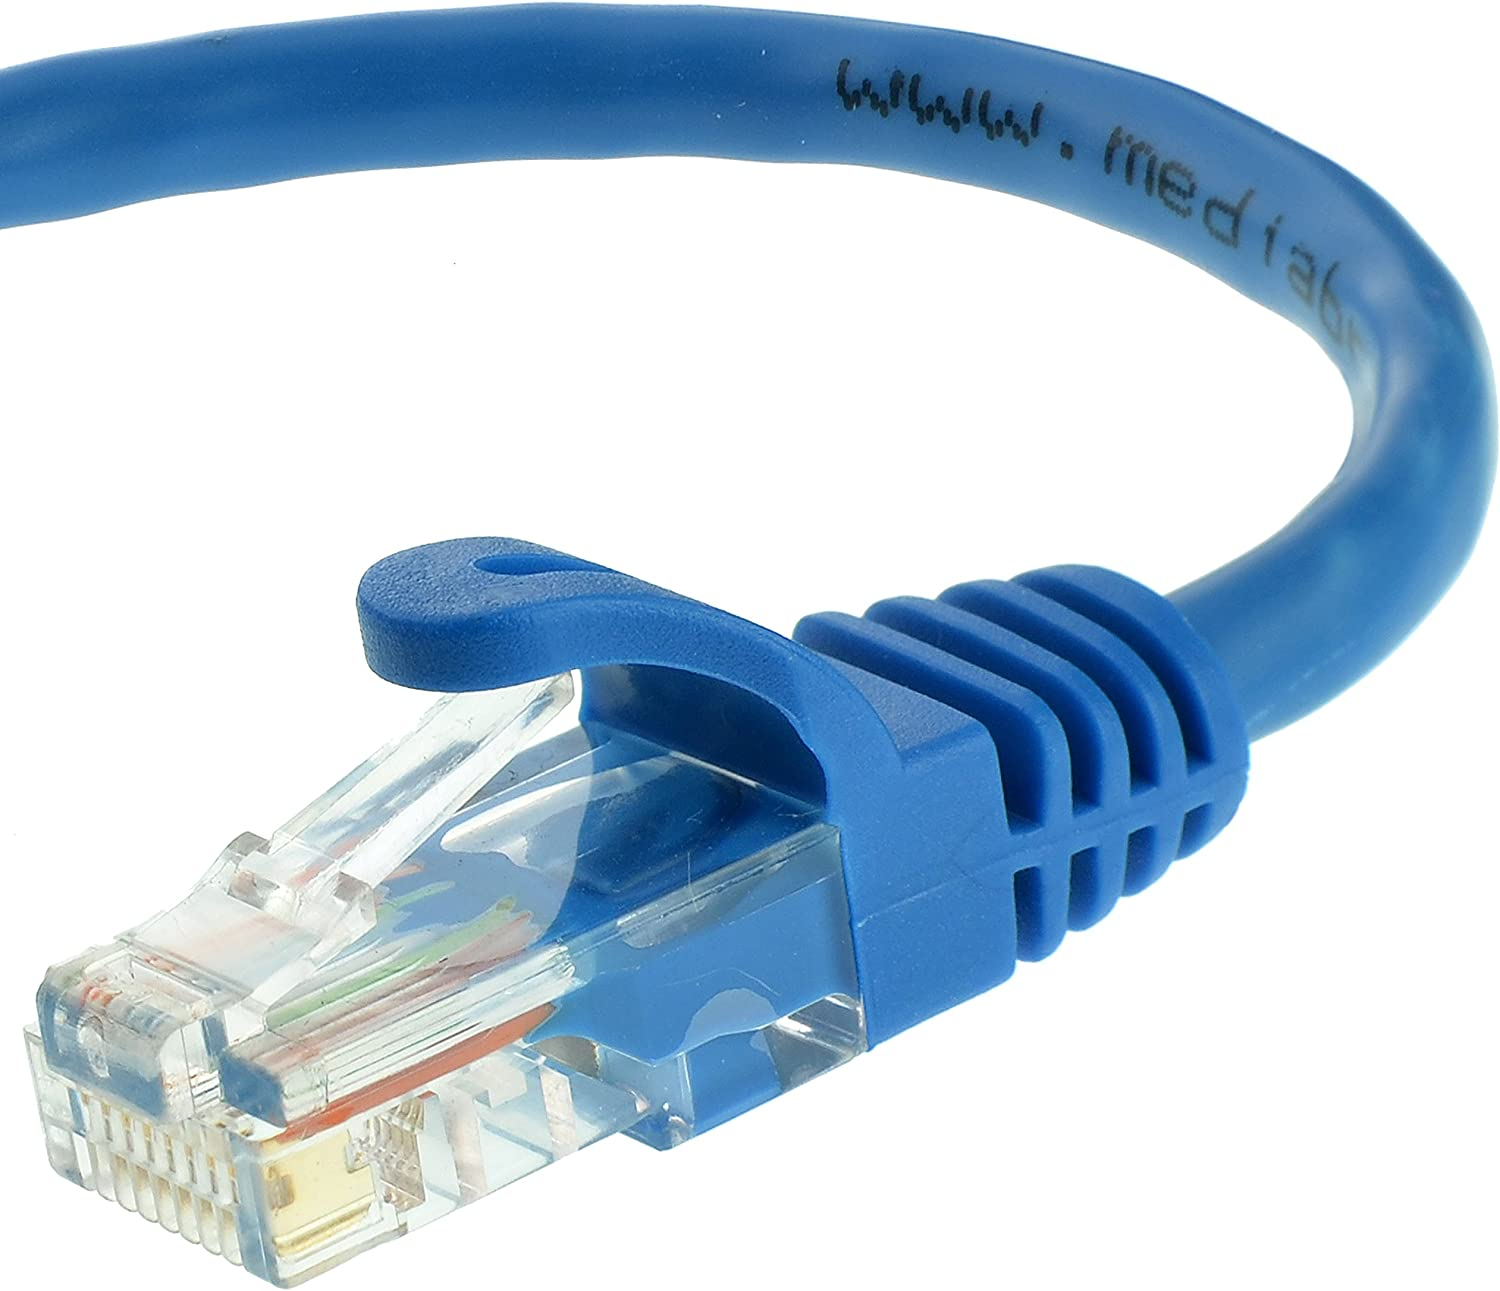 Mediabridge Ethernet Cable (10 Feet) - Supports Cat6 / Cat5e / Cat5 Standards, 550MHz, 10Gbps - RJ45 Computer Networking Cord (Part# 31-399-10X)